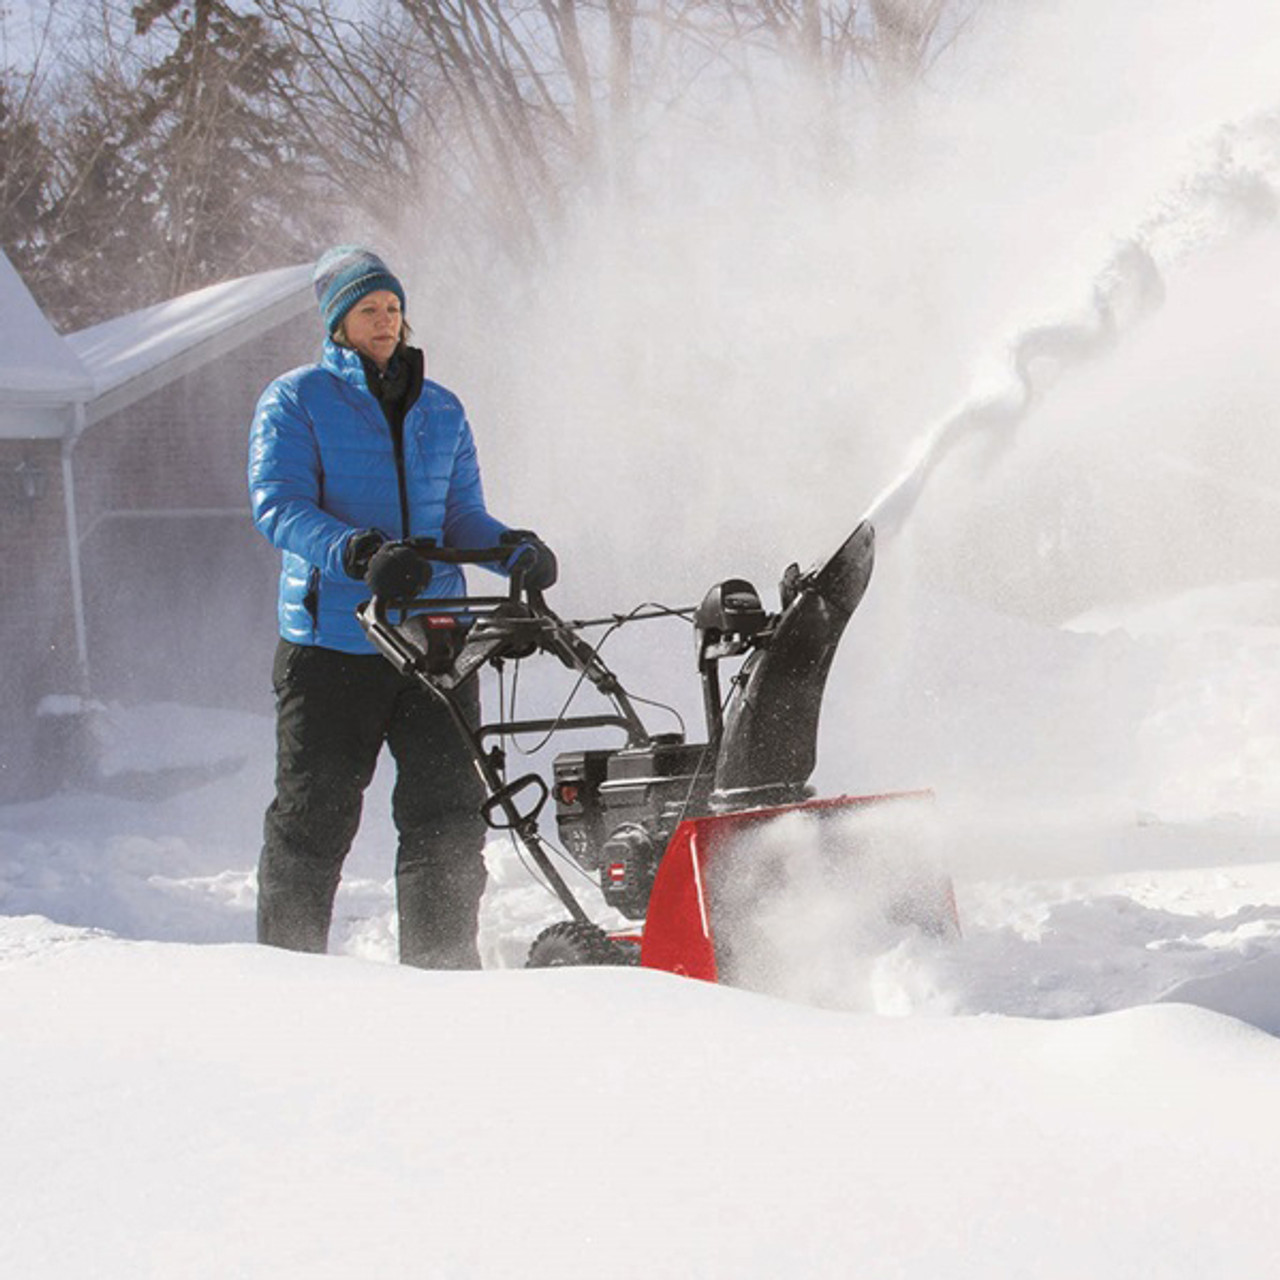 """Toro 36003 24"""" Two-Stage Electric Start SnowMaster 824 QXE Snowblower Image 4"""